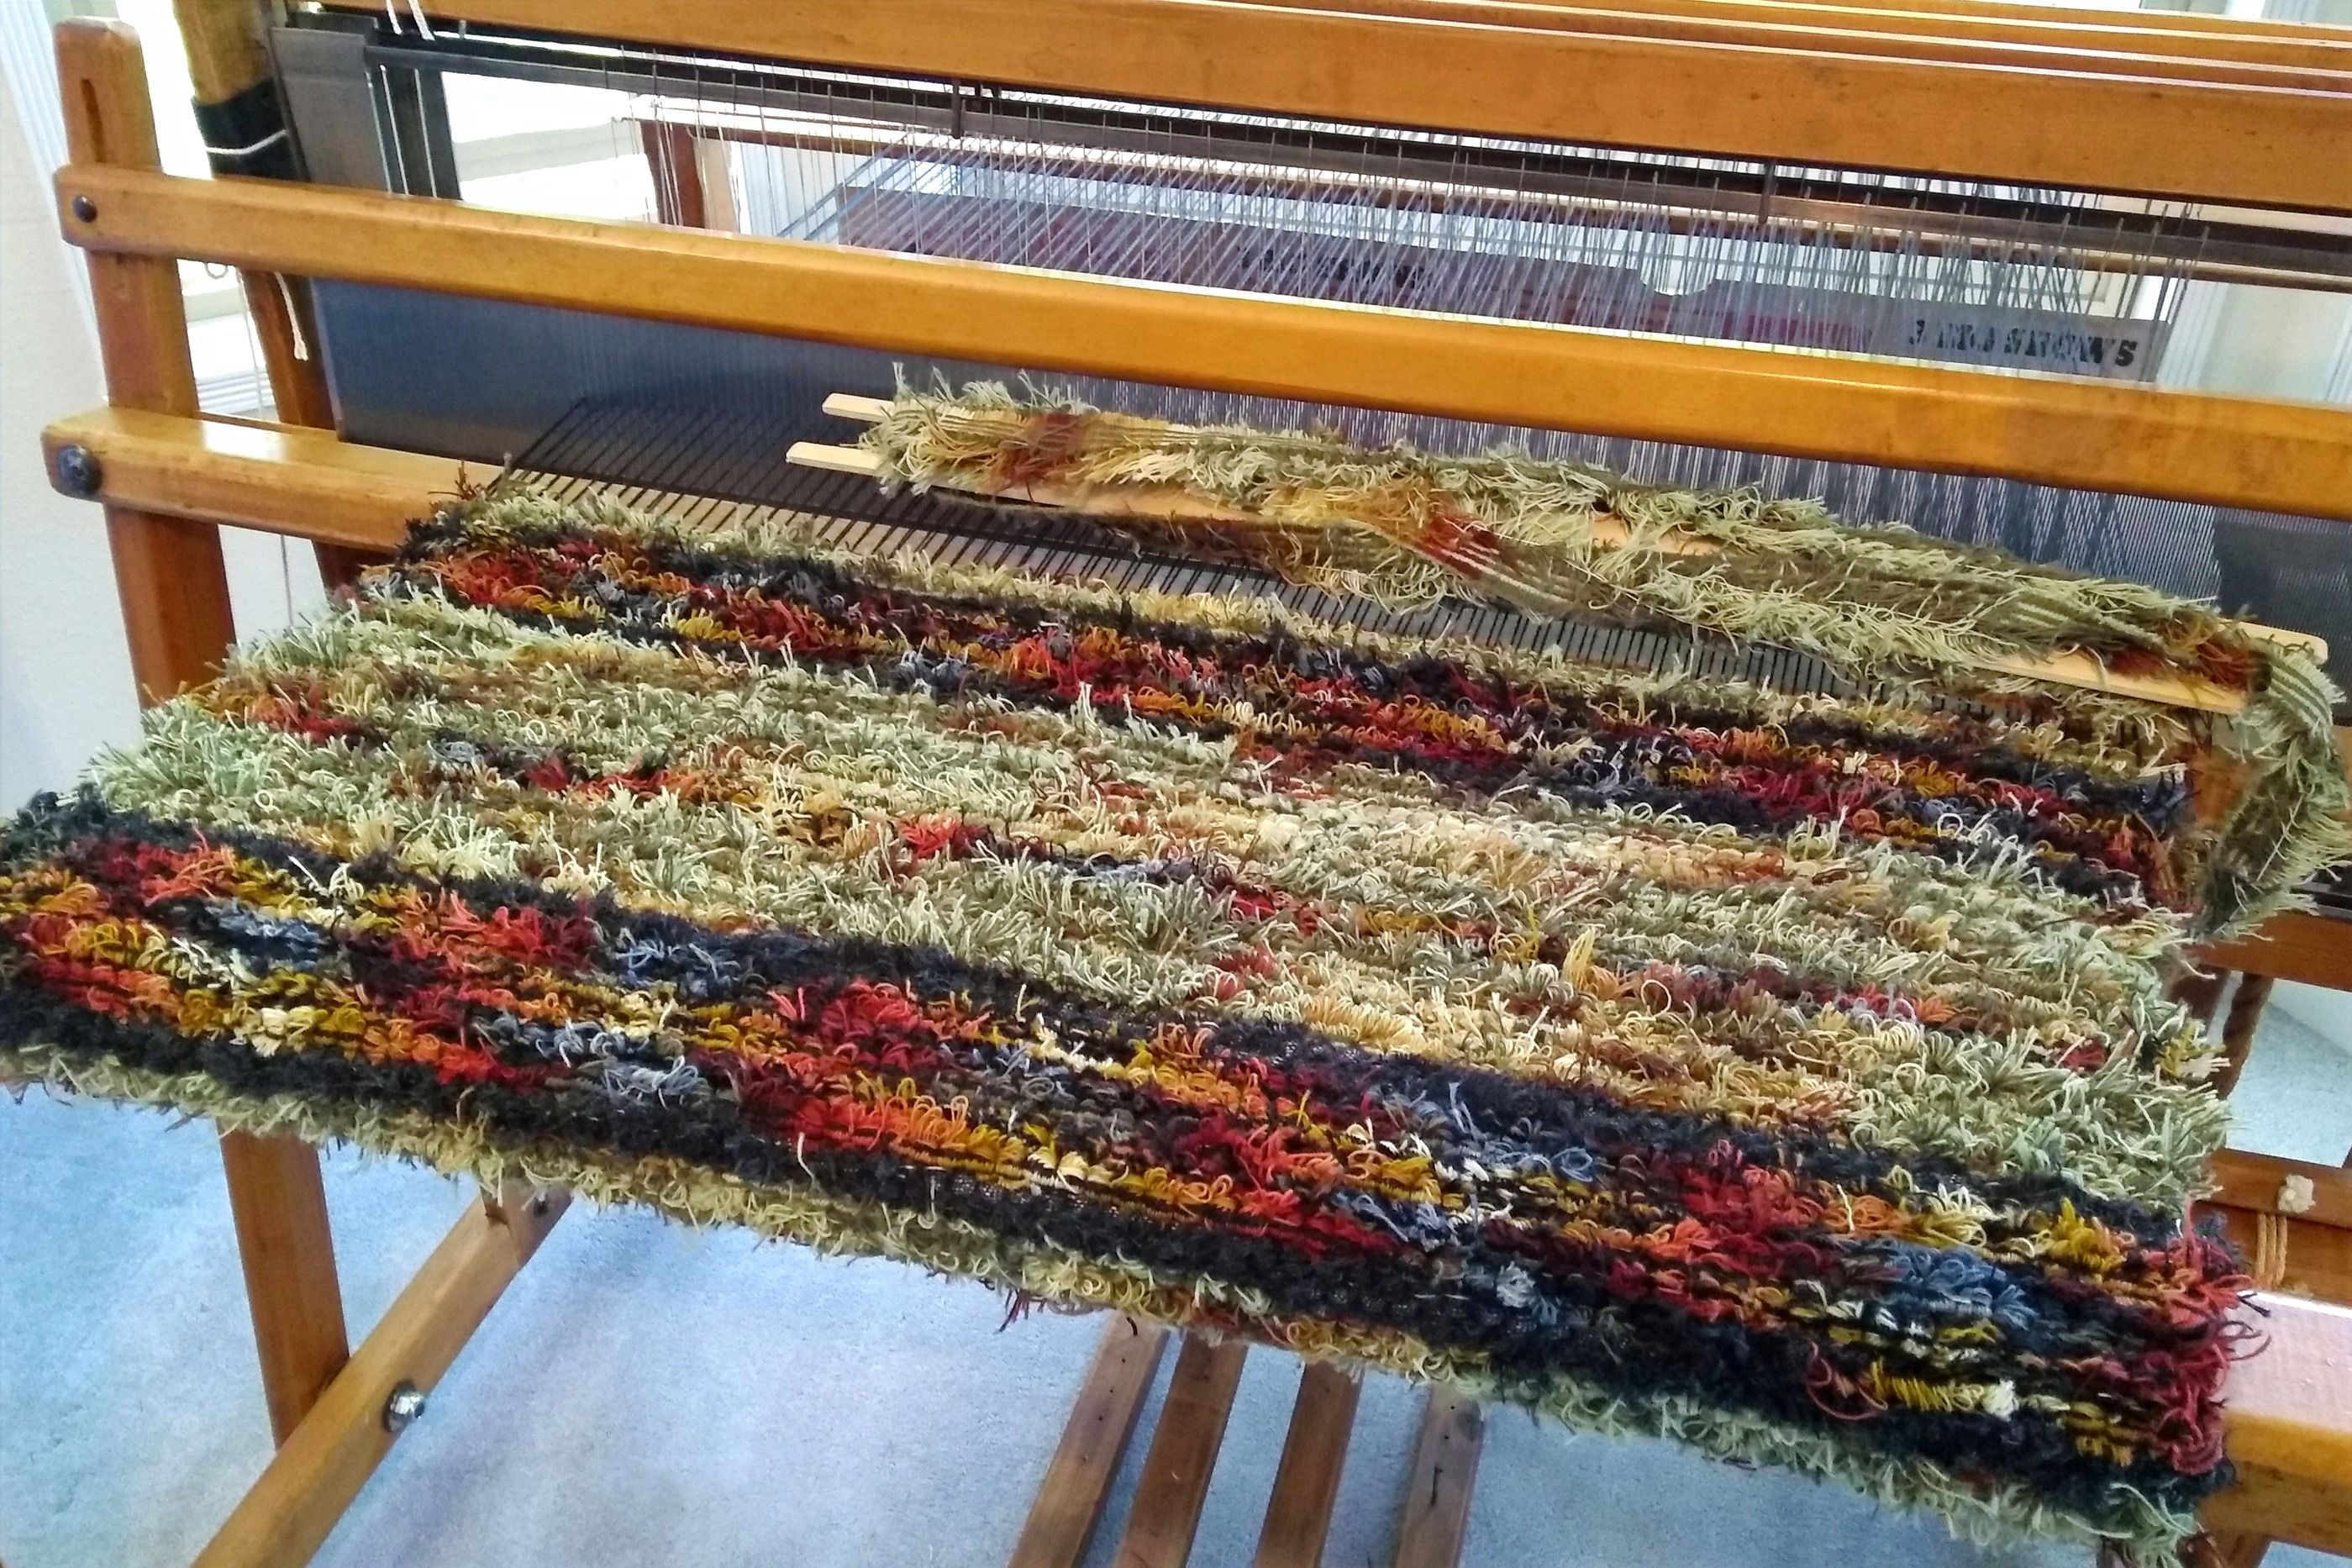 Weaving a rug on one of my antique floor looms.